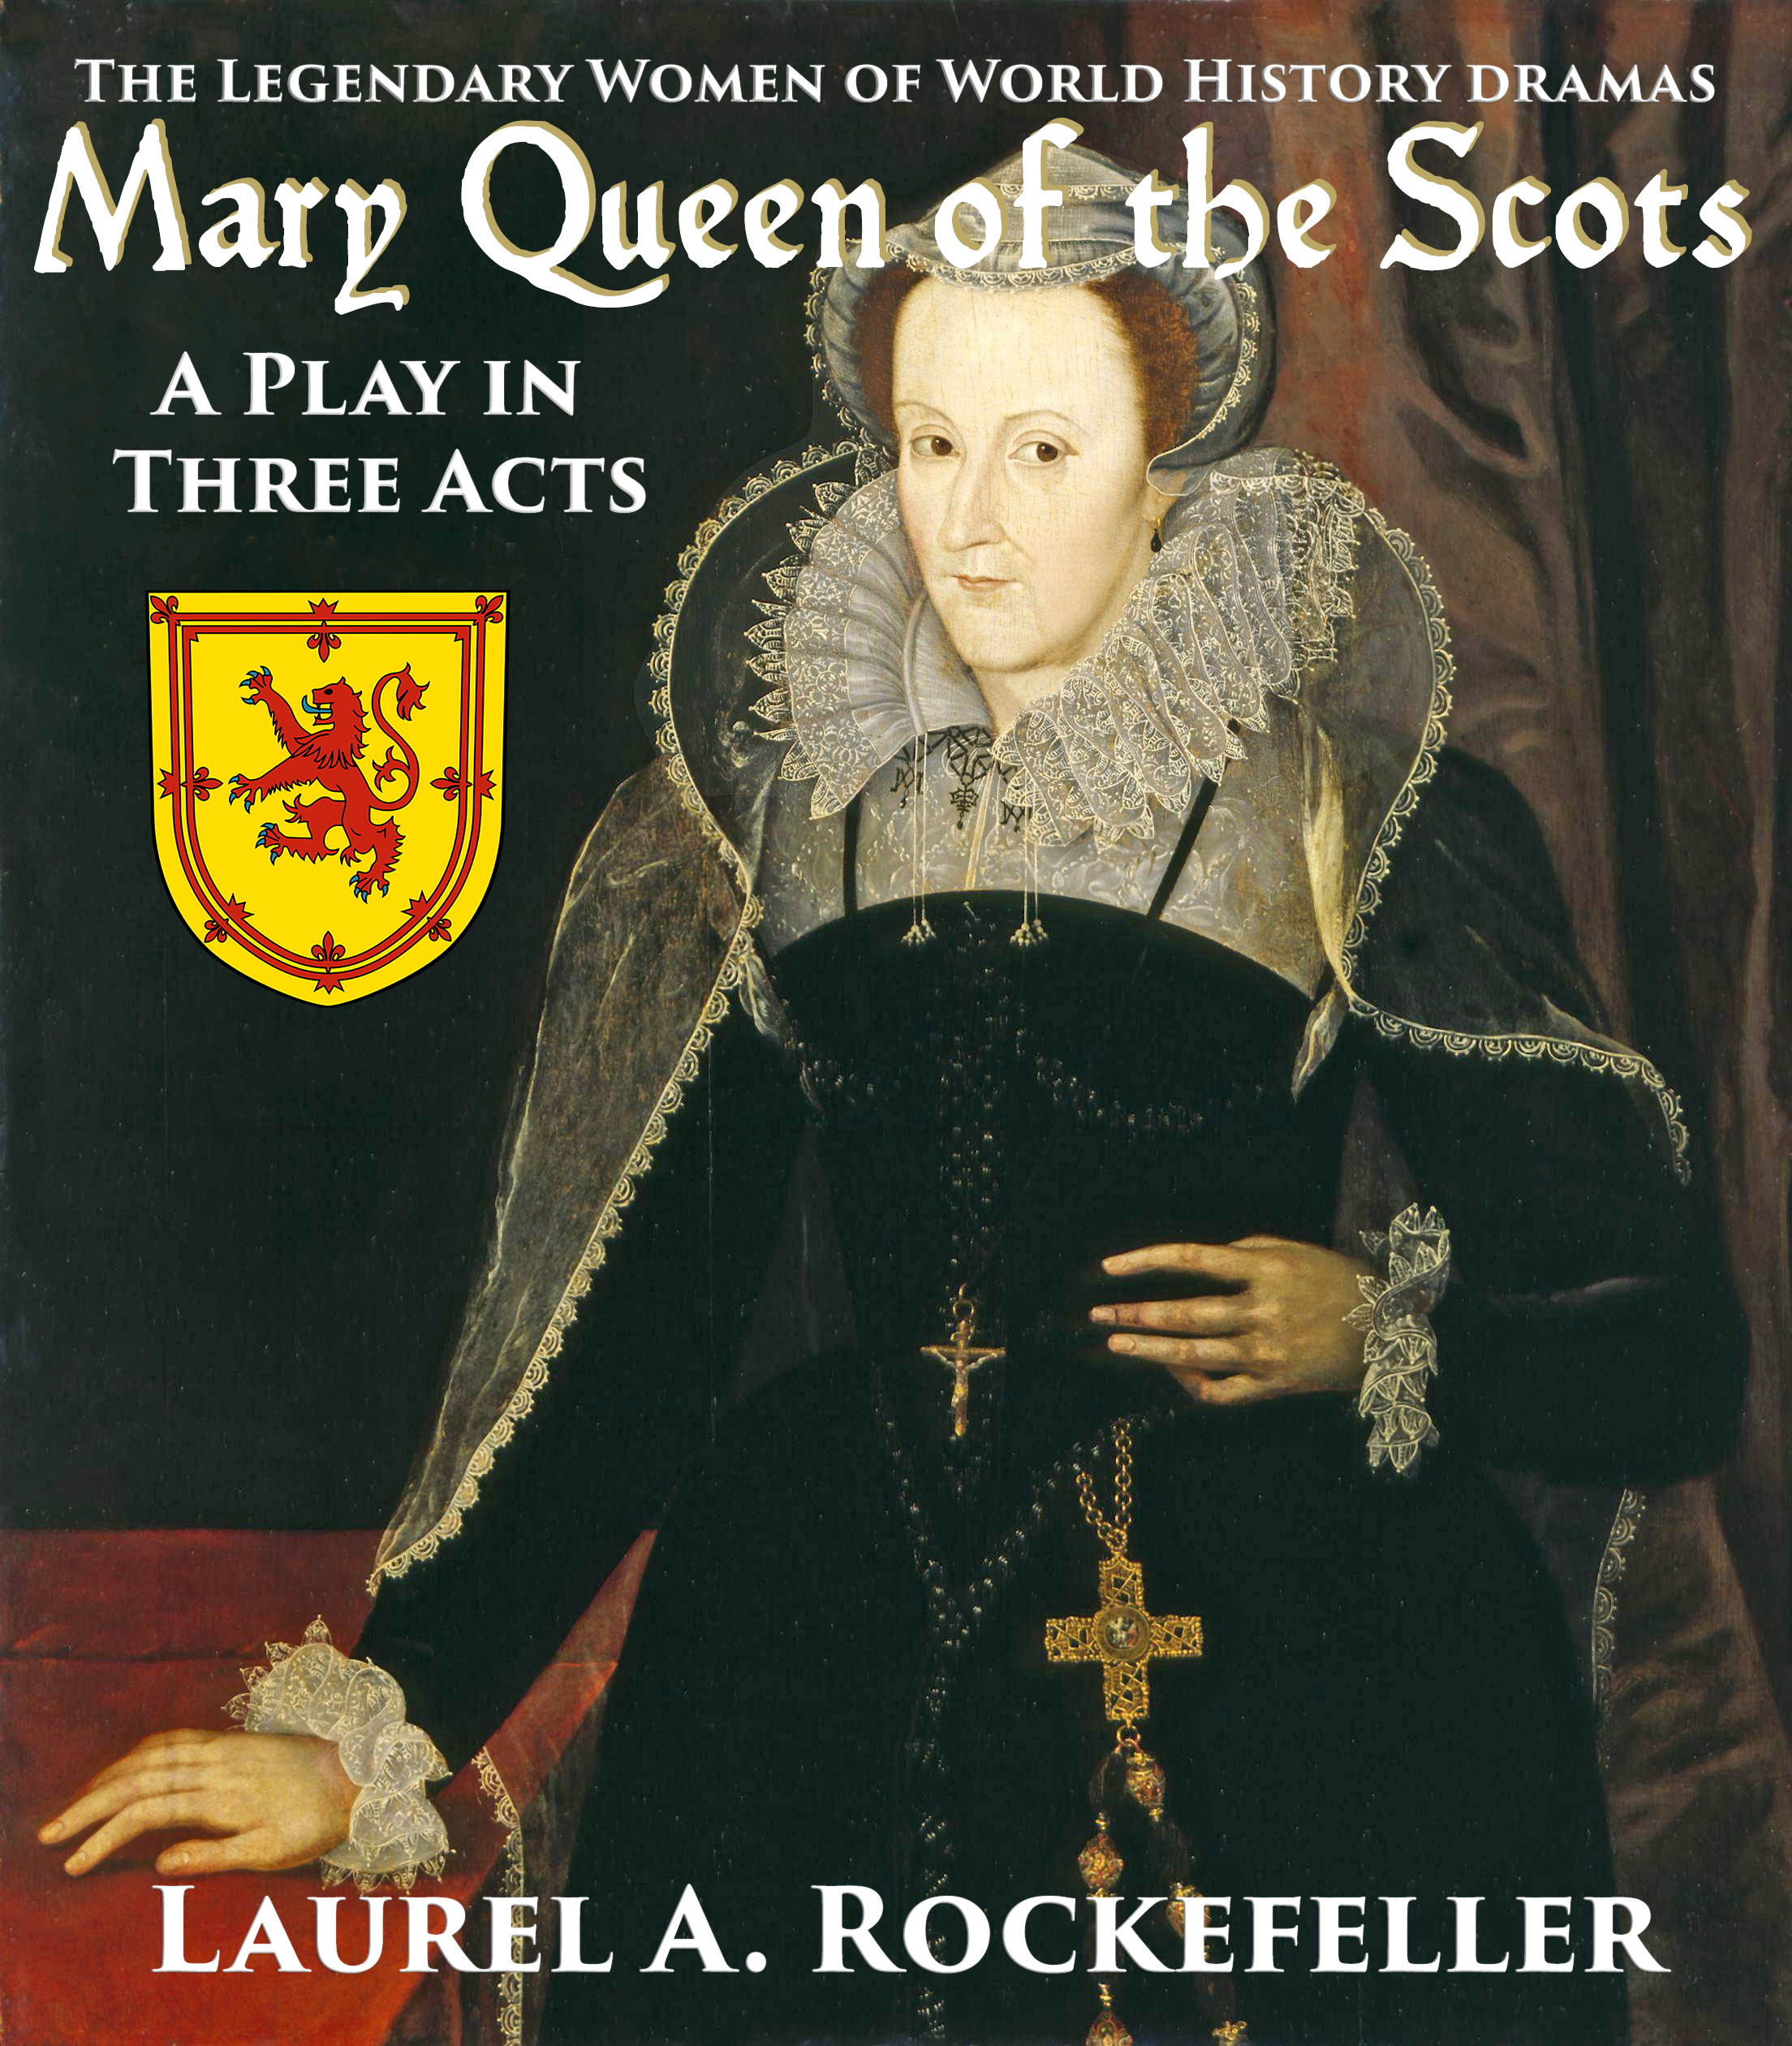 Mary queen of the scots: a play in three acts